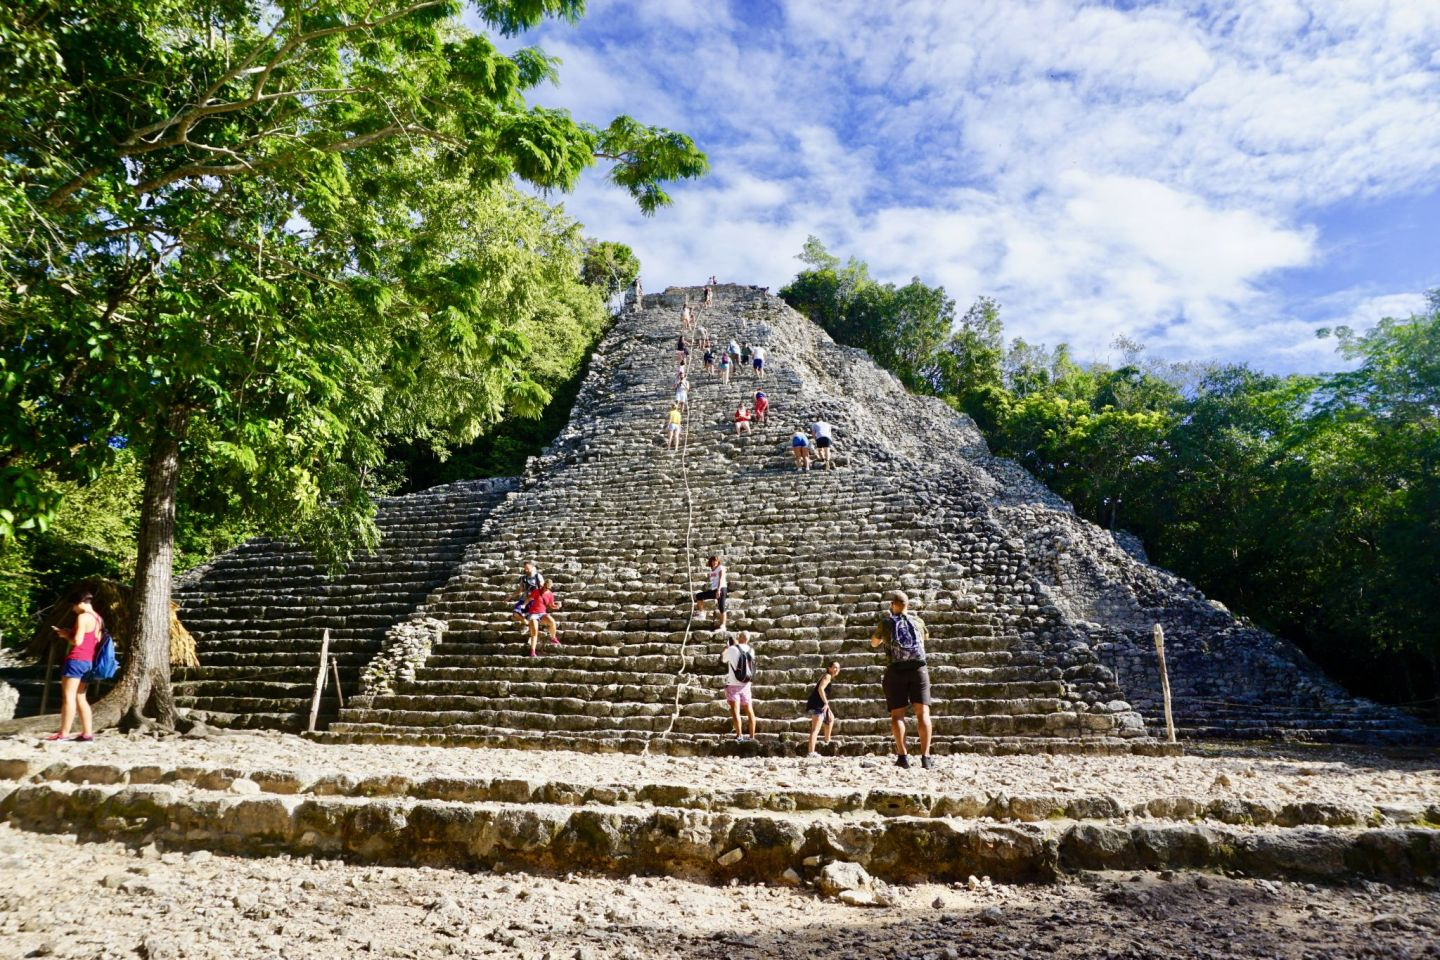 Visiting the Ancient Mayan Ruins of Coba – A Complete Guide